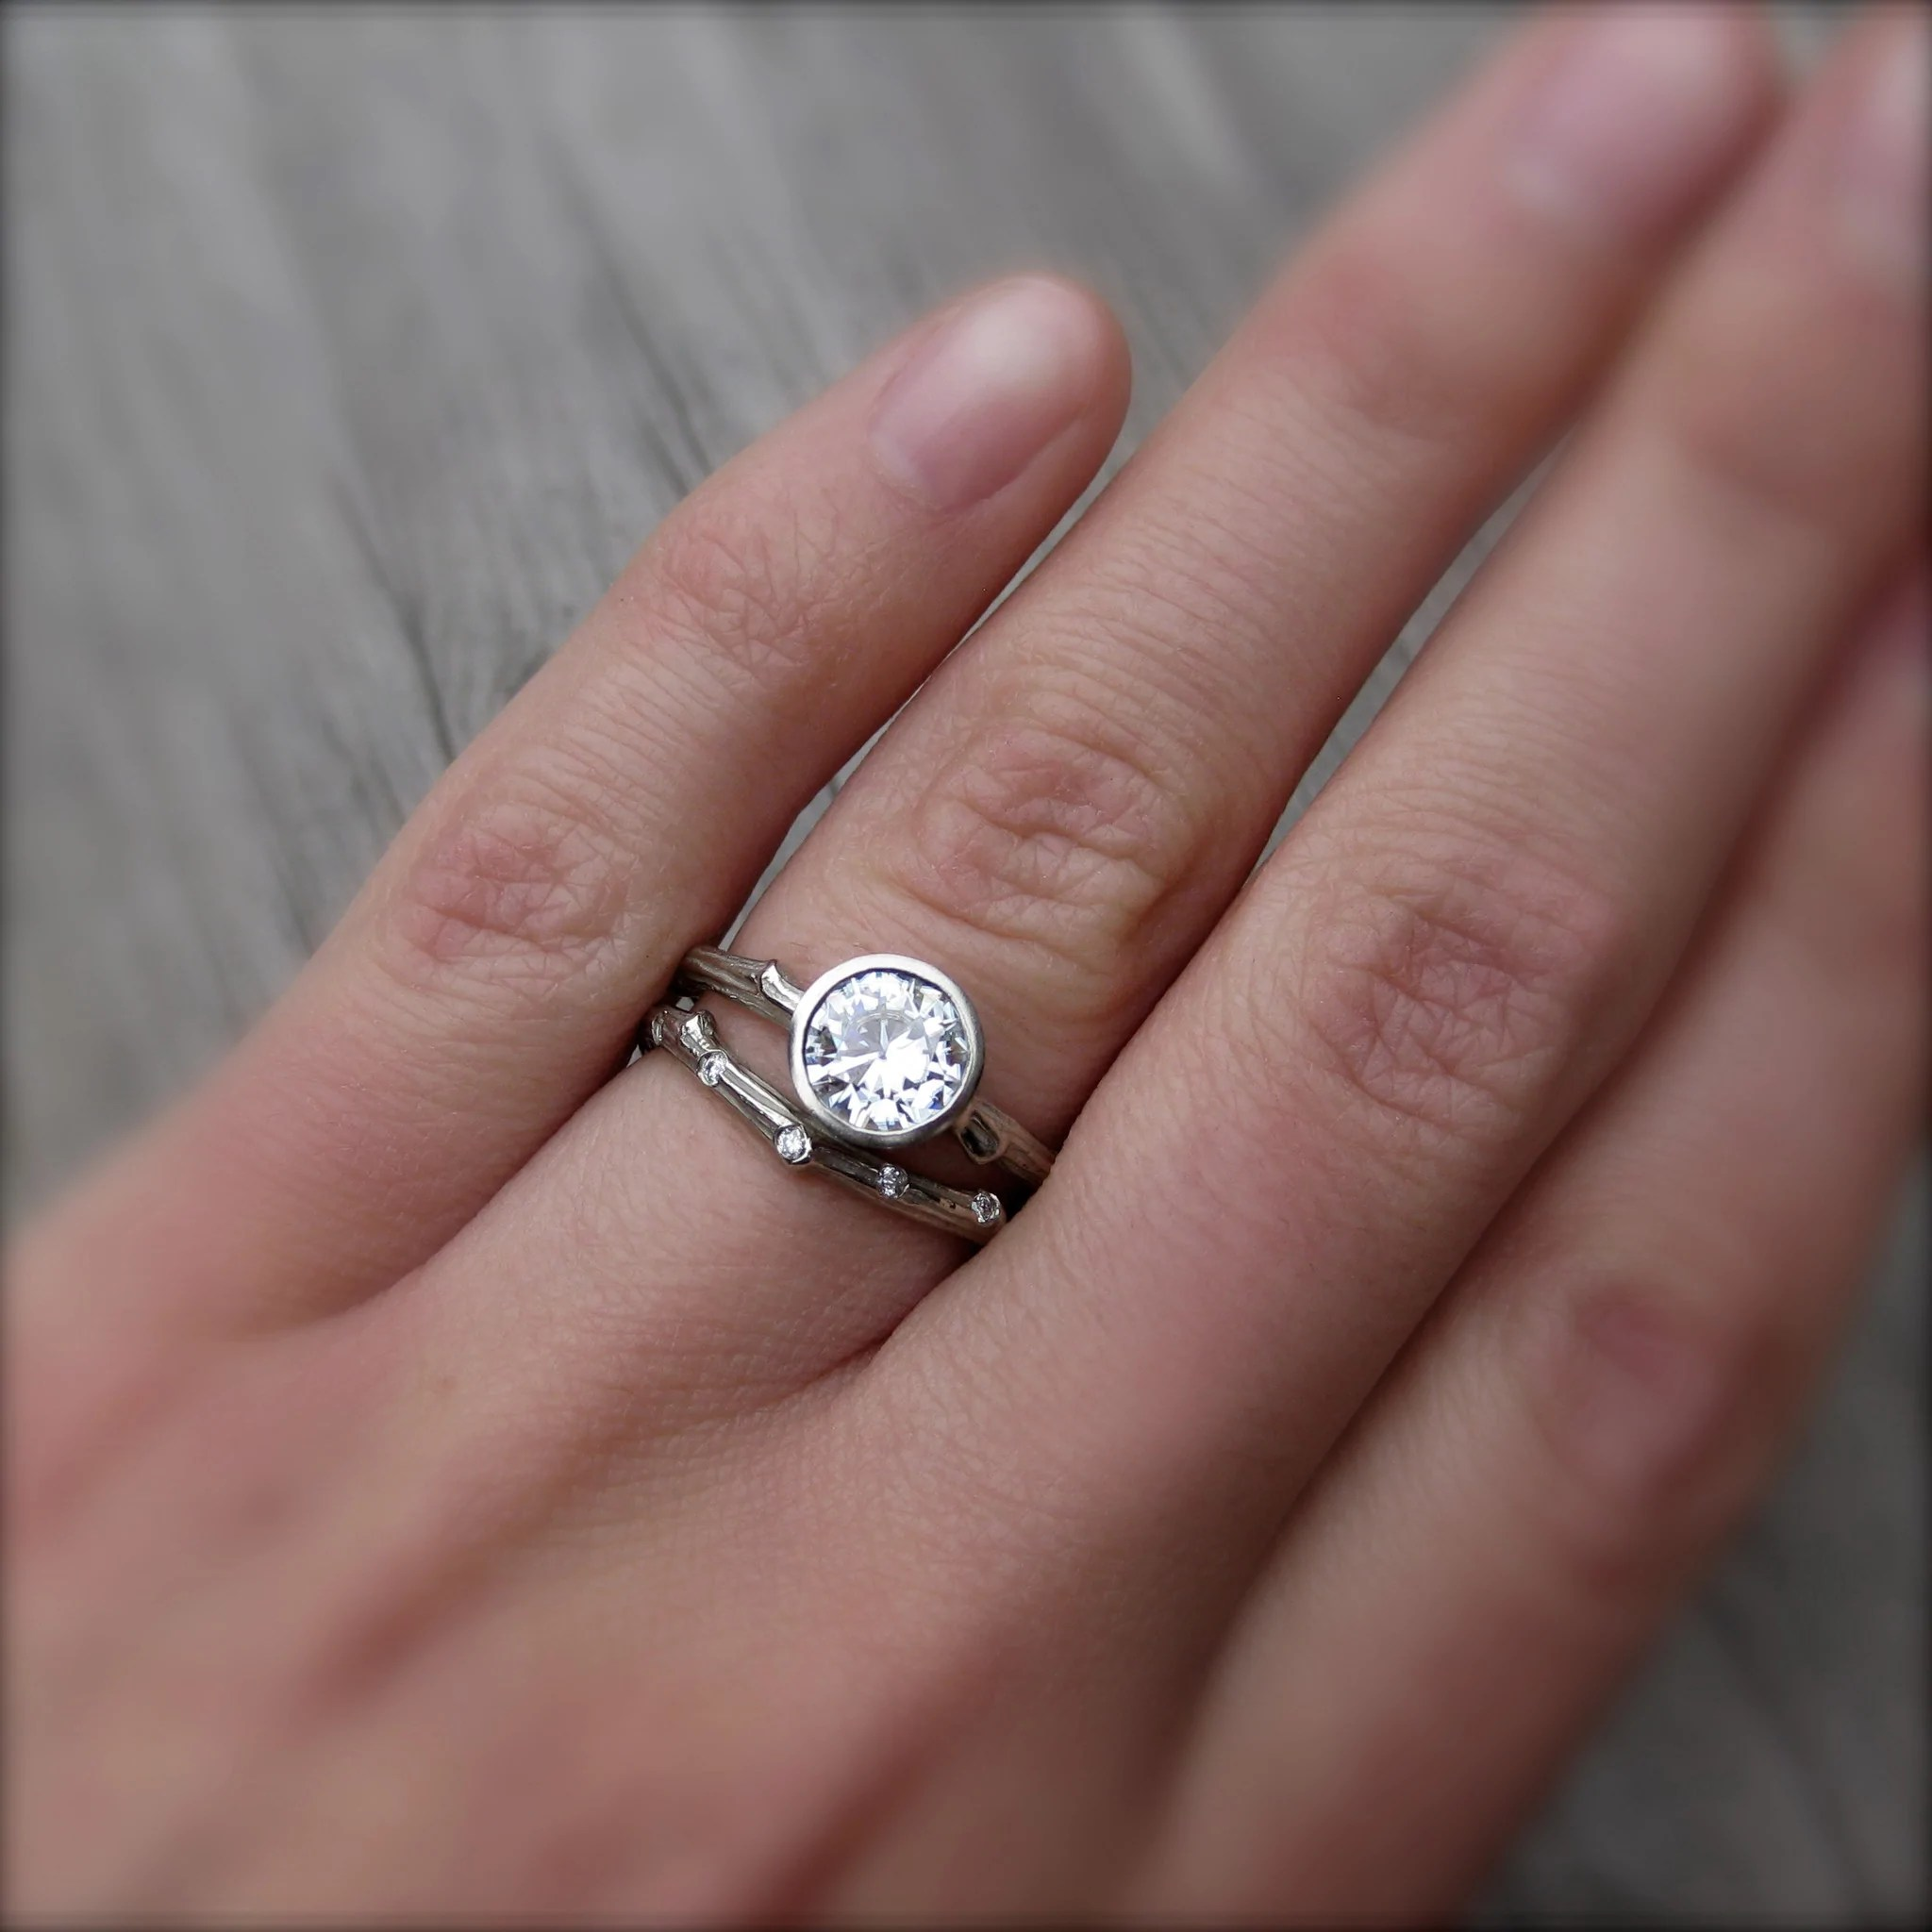 Fullsize Of Engagement Ring Finger